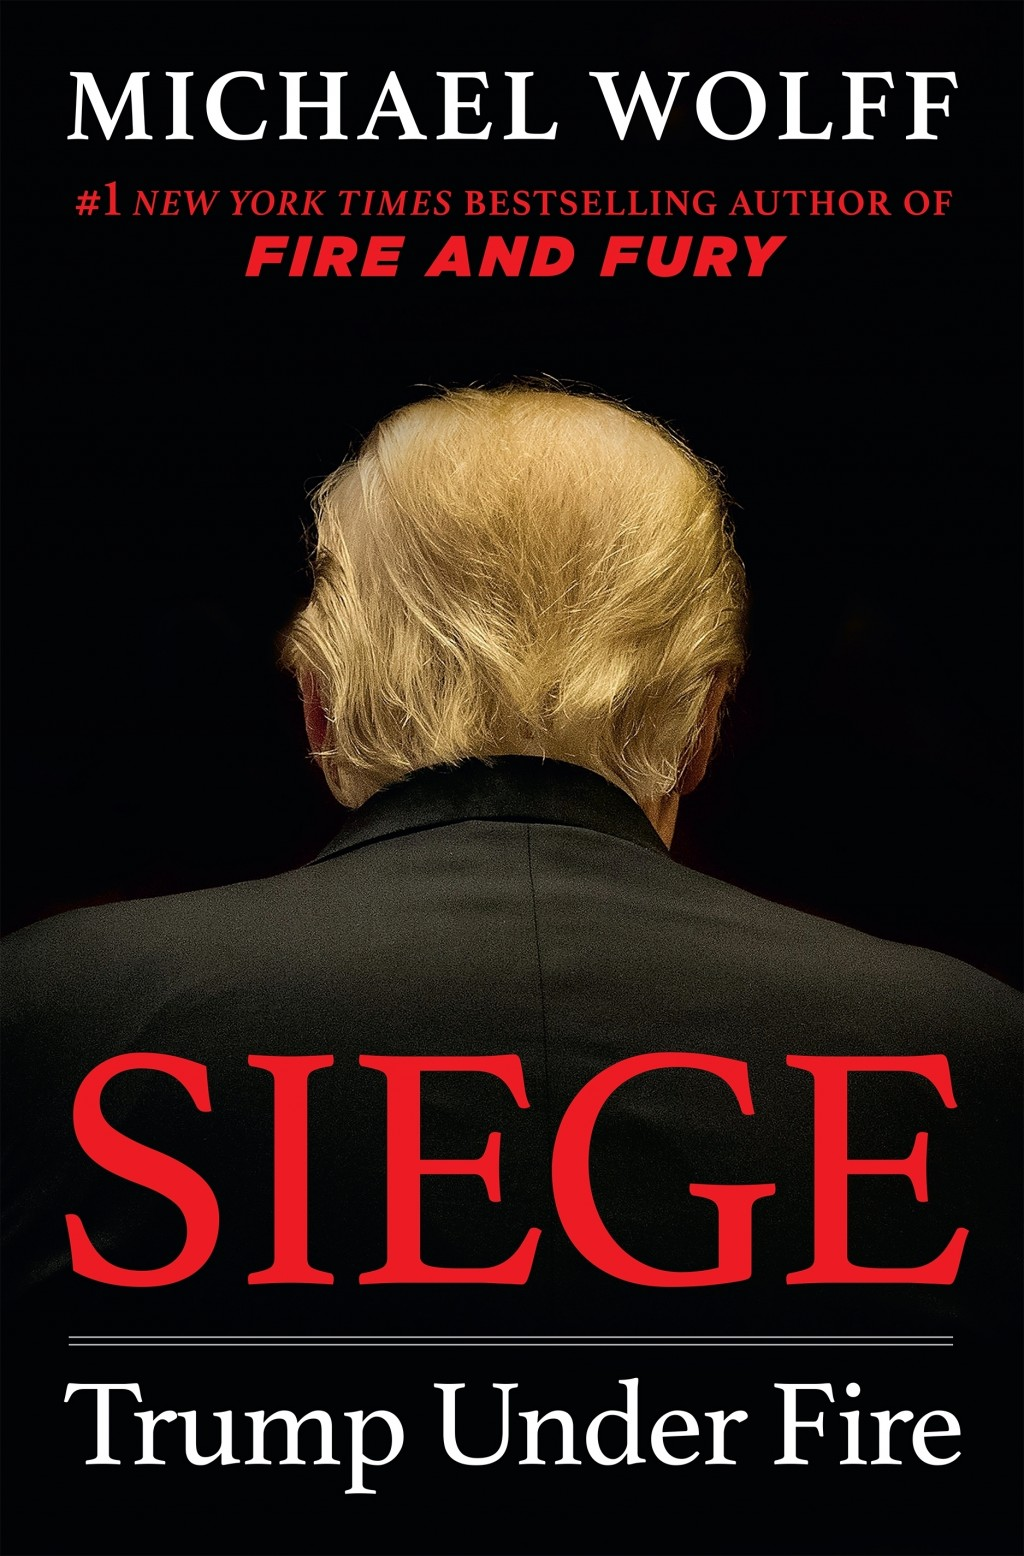 """This cover image released by Henry Holt and Company shows """"Siege: Trump Under Fire,"""" by Michael Wolff, which will be released on June 4. (Henry Holt a"""